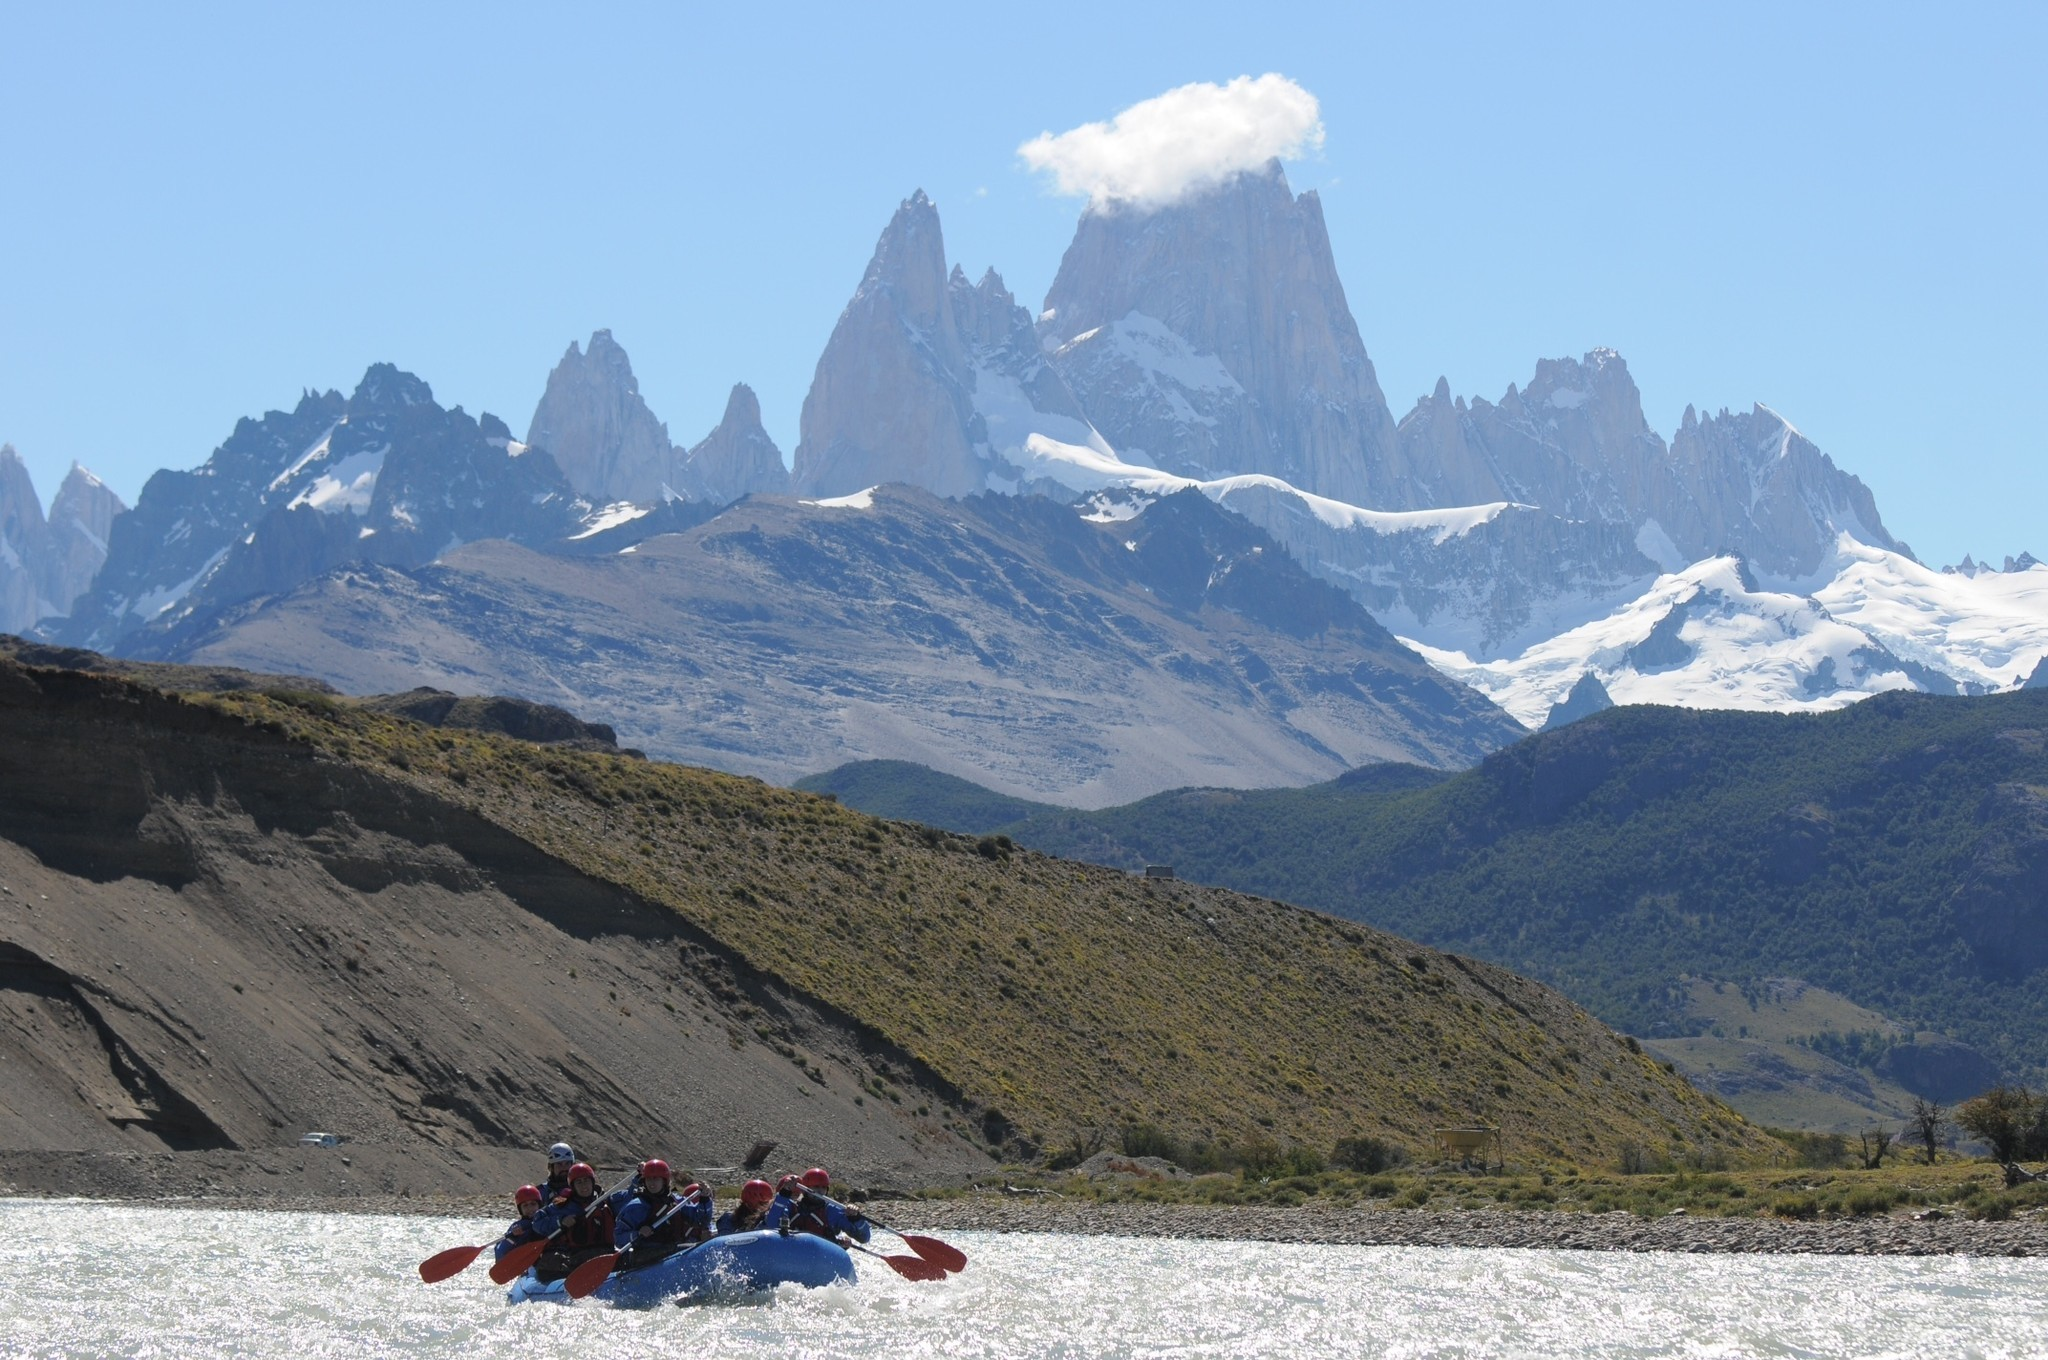 Now you can go whitewater rafting in Argentina's Los Glaciares park